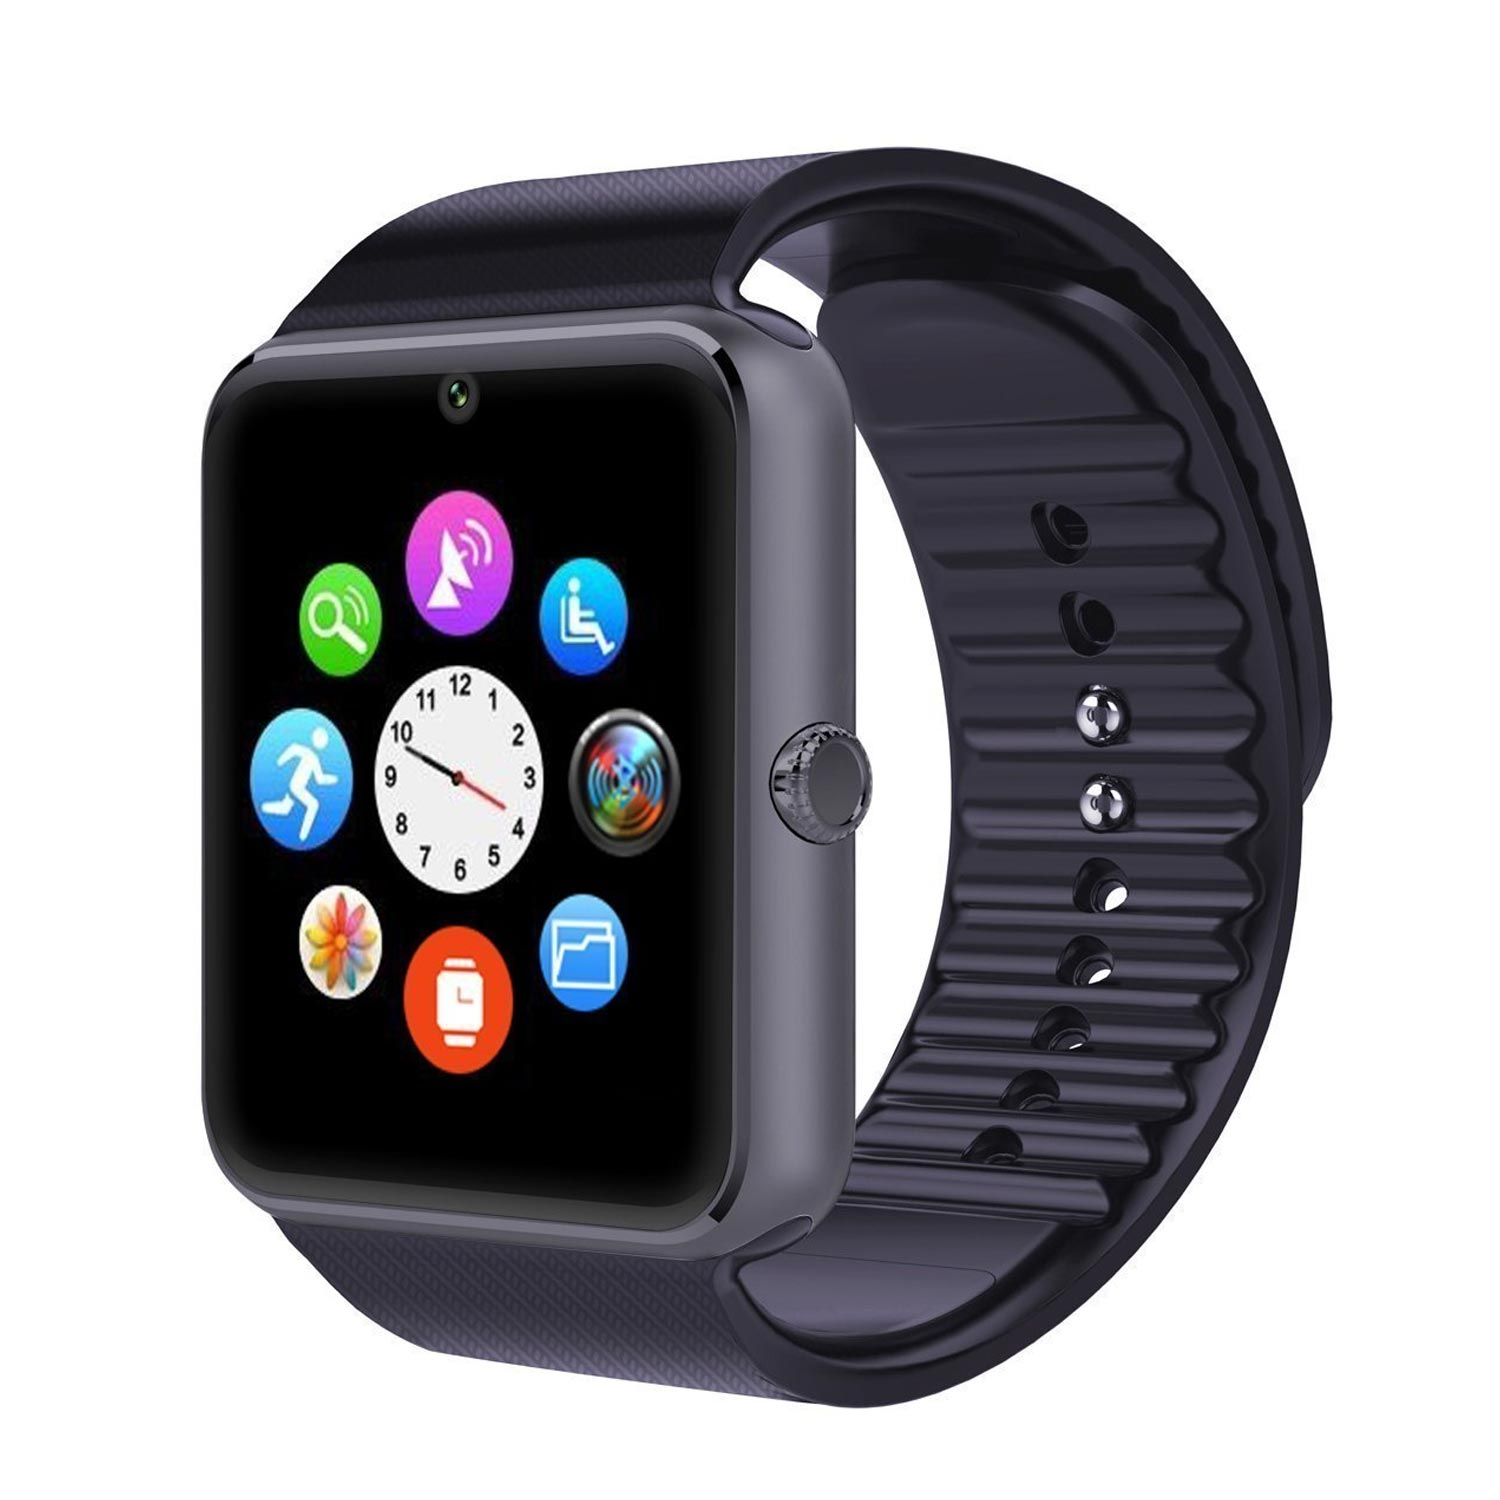 yamay smartwatch mit fitness tracker und schlaf berwachung herrenuhren armbanduhren f r m nner. Black Bedroom Furniture Sets. Home Design Ideas